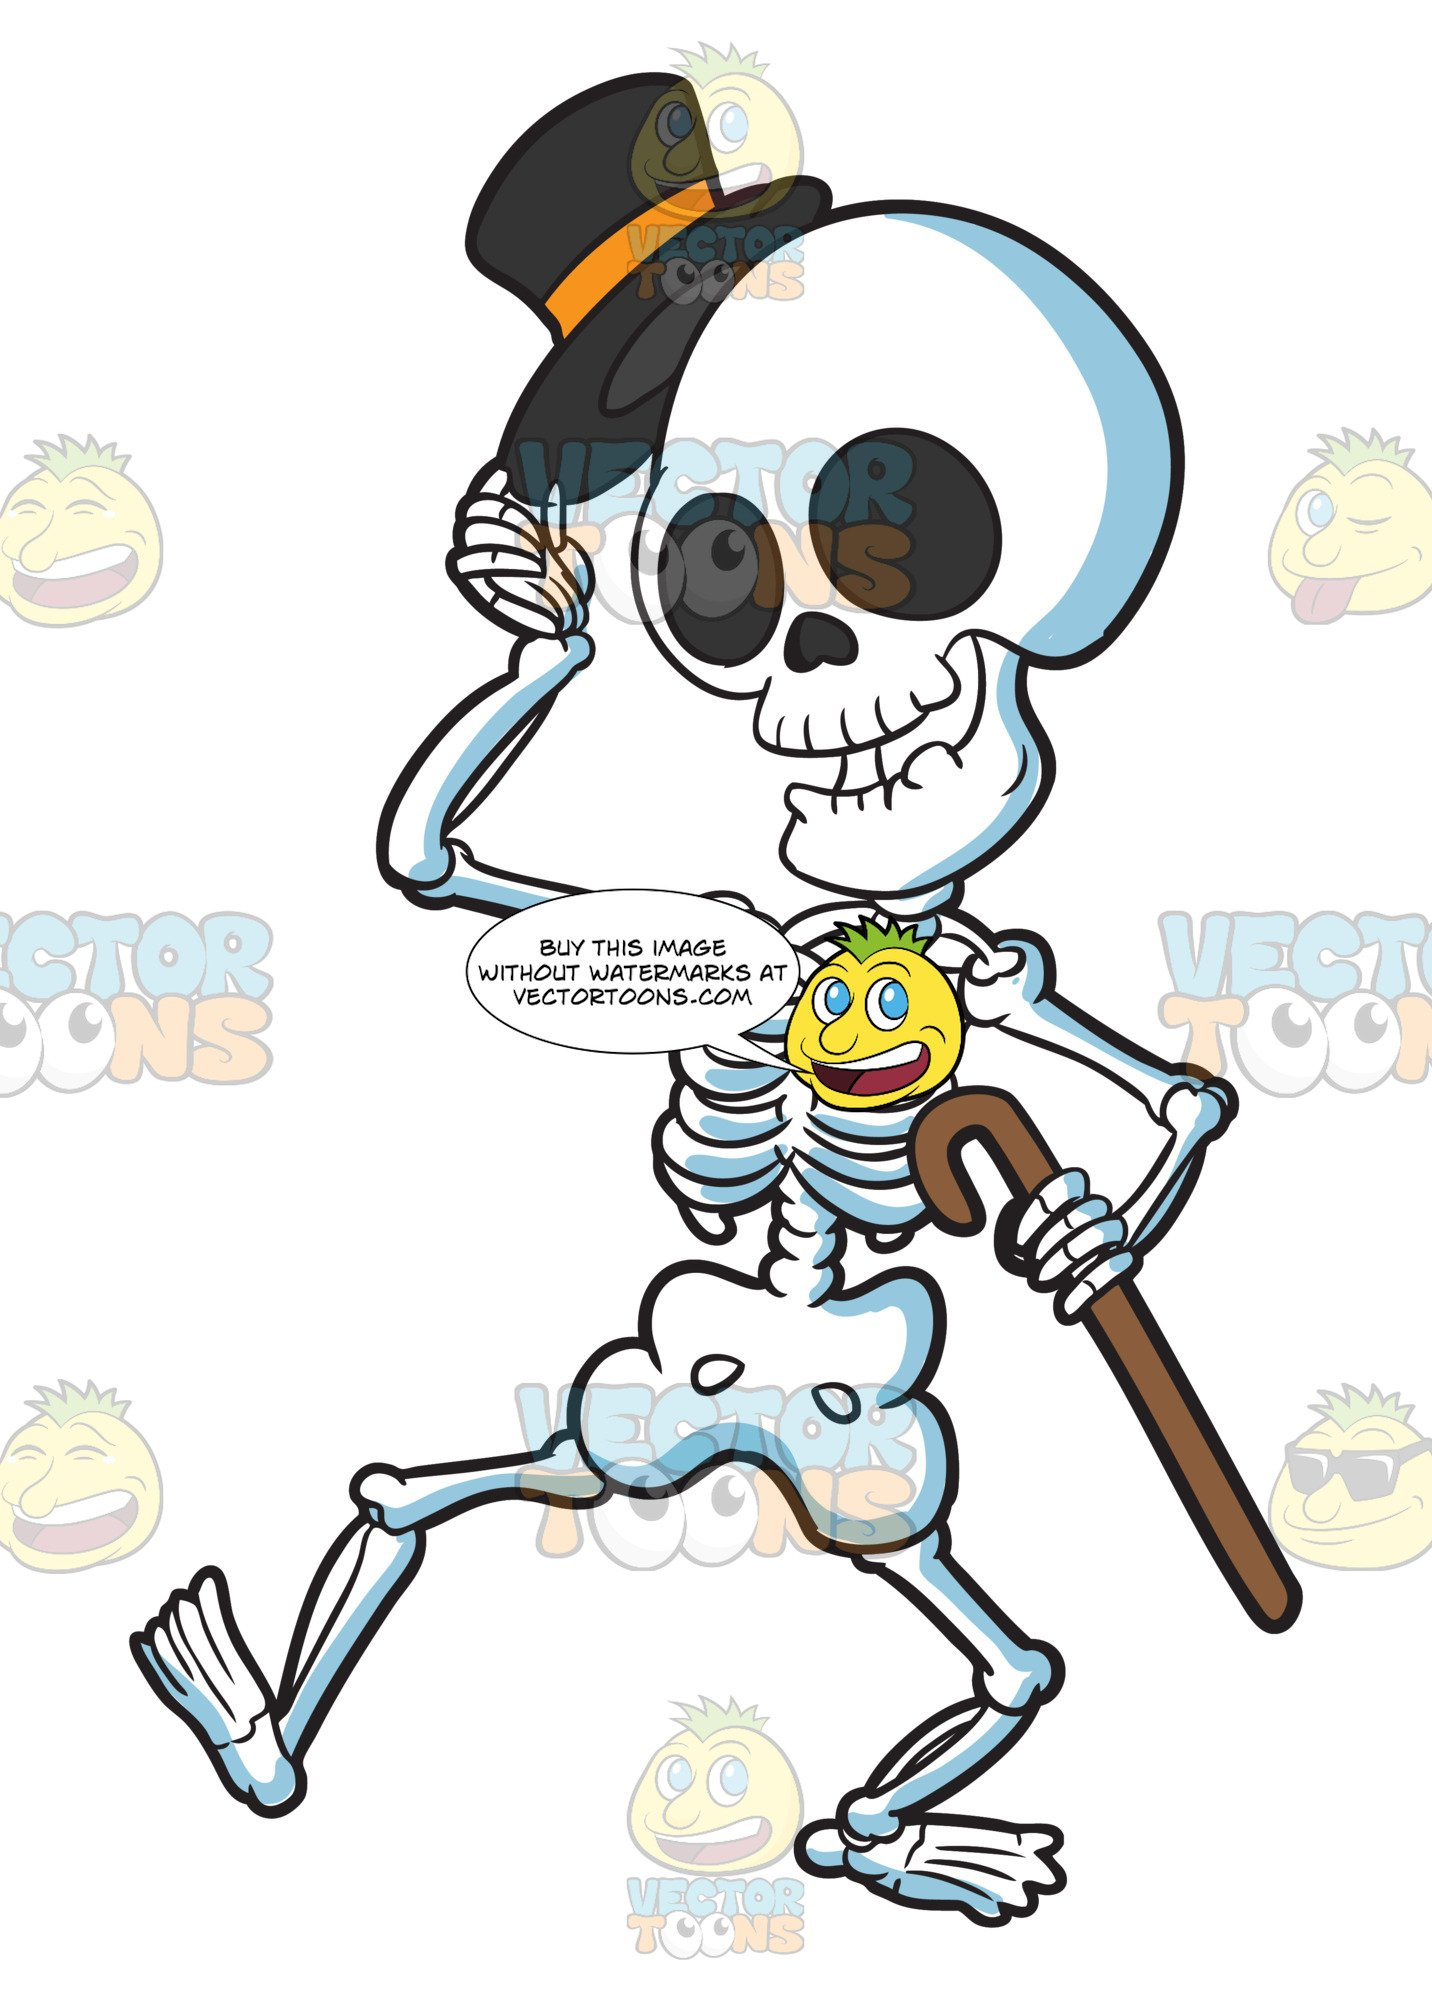 Skeleton holding a cane clipart vector free download A Skeleton Looking Refined And Respectful vector free download